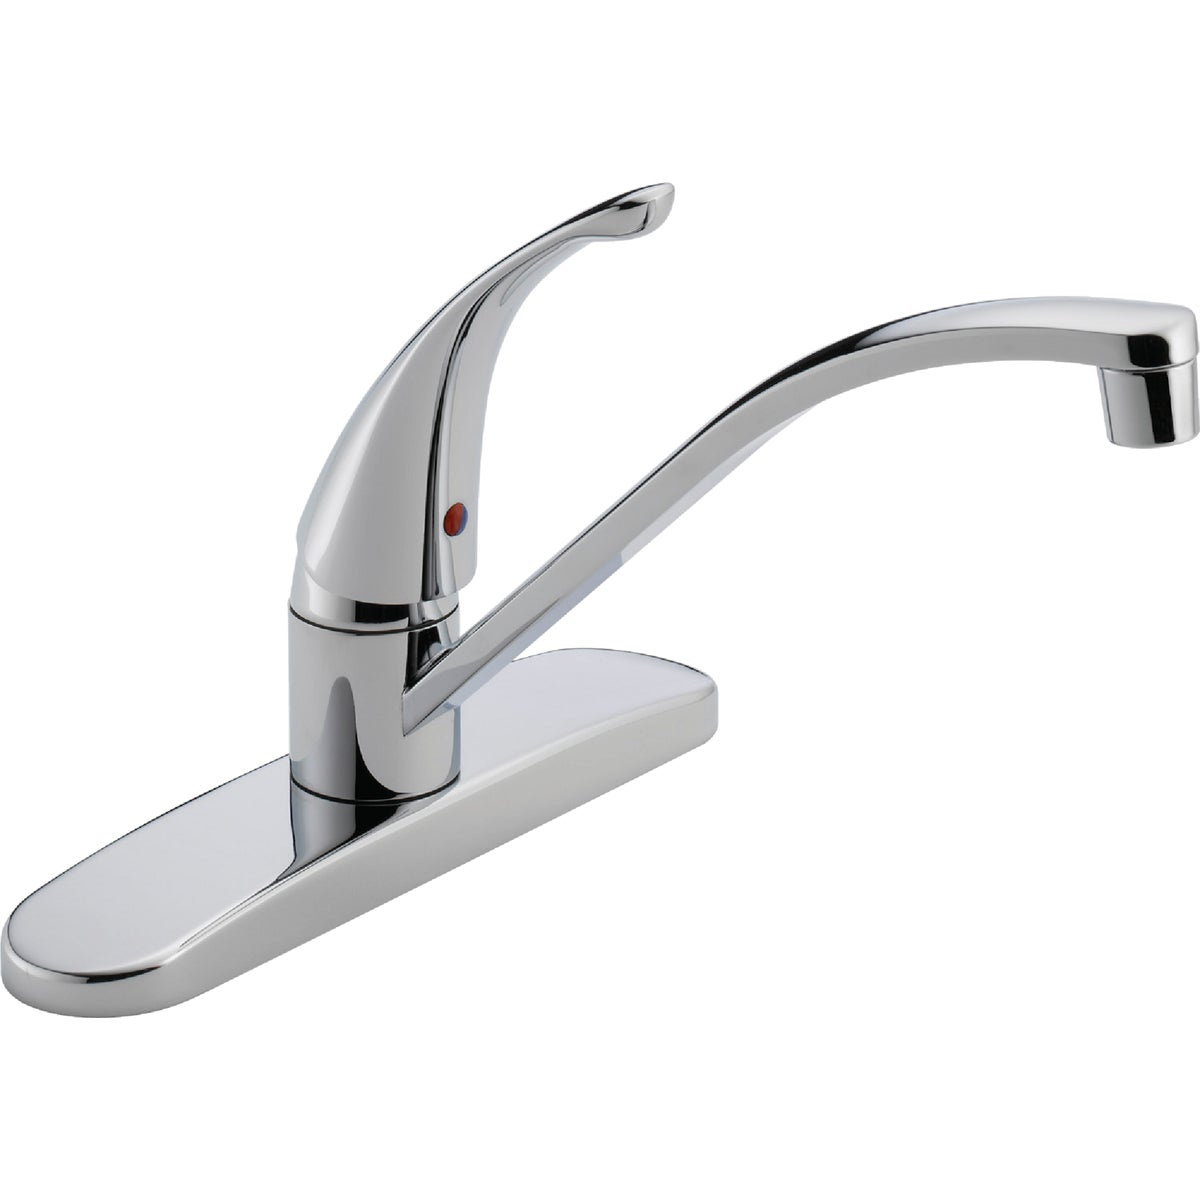 1H CHROME KITCHEN FAUCET - P188200LF by Delta Faucet Co